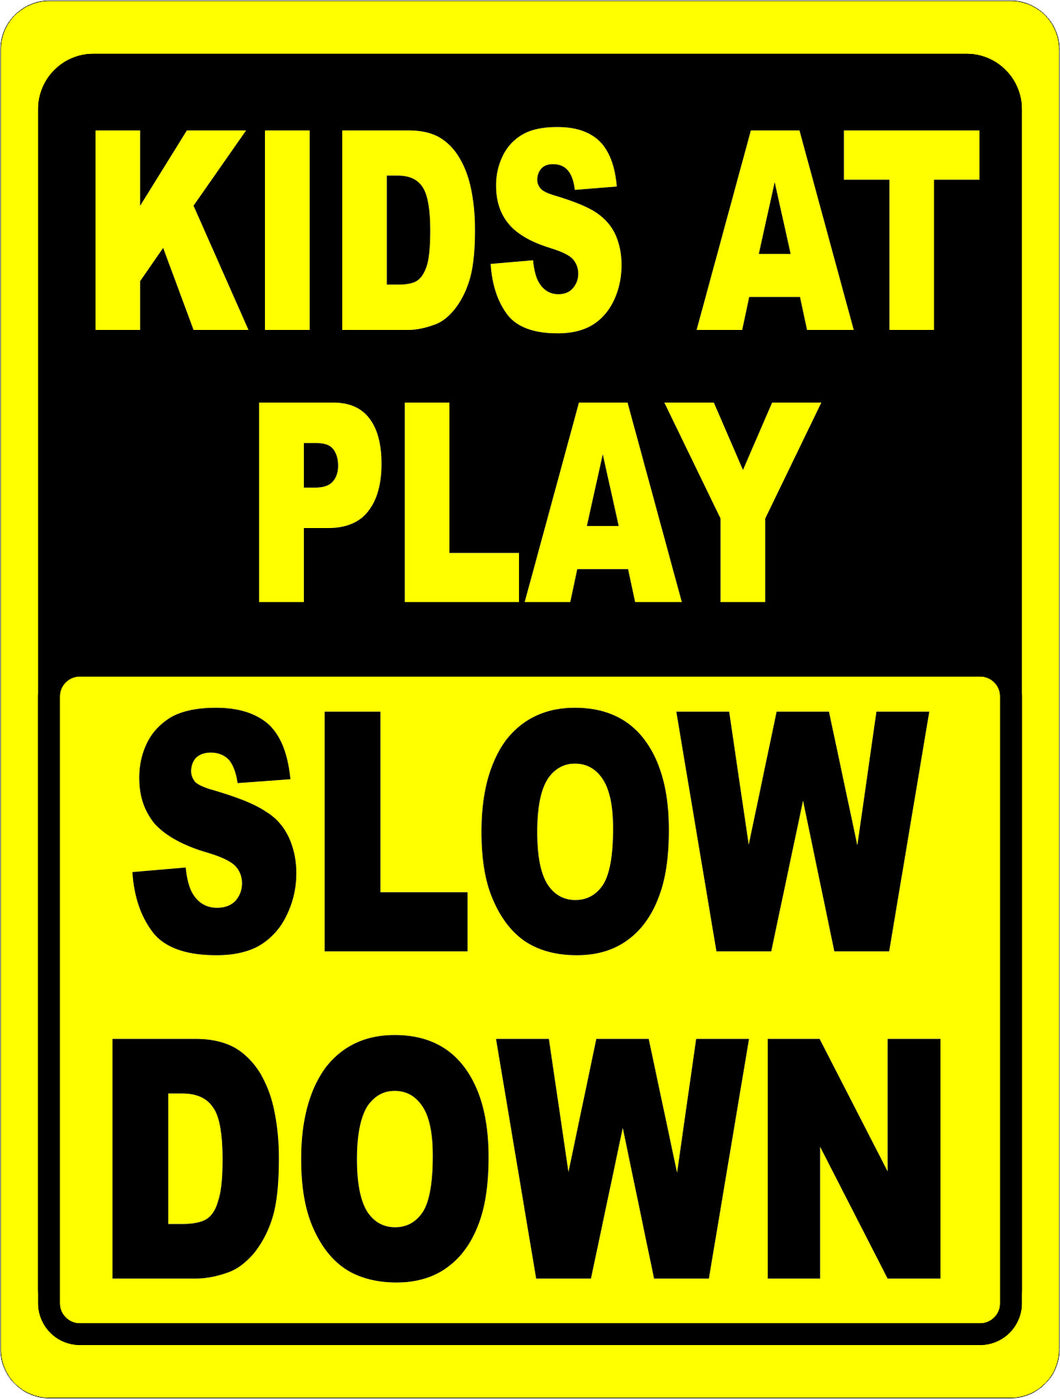 Kids at Play Slow Down Sign - Signs & Decals by SalaGraphics